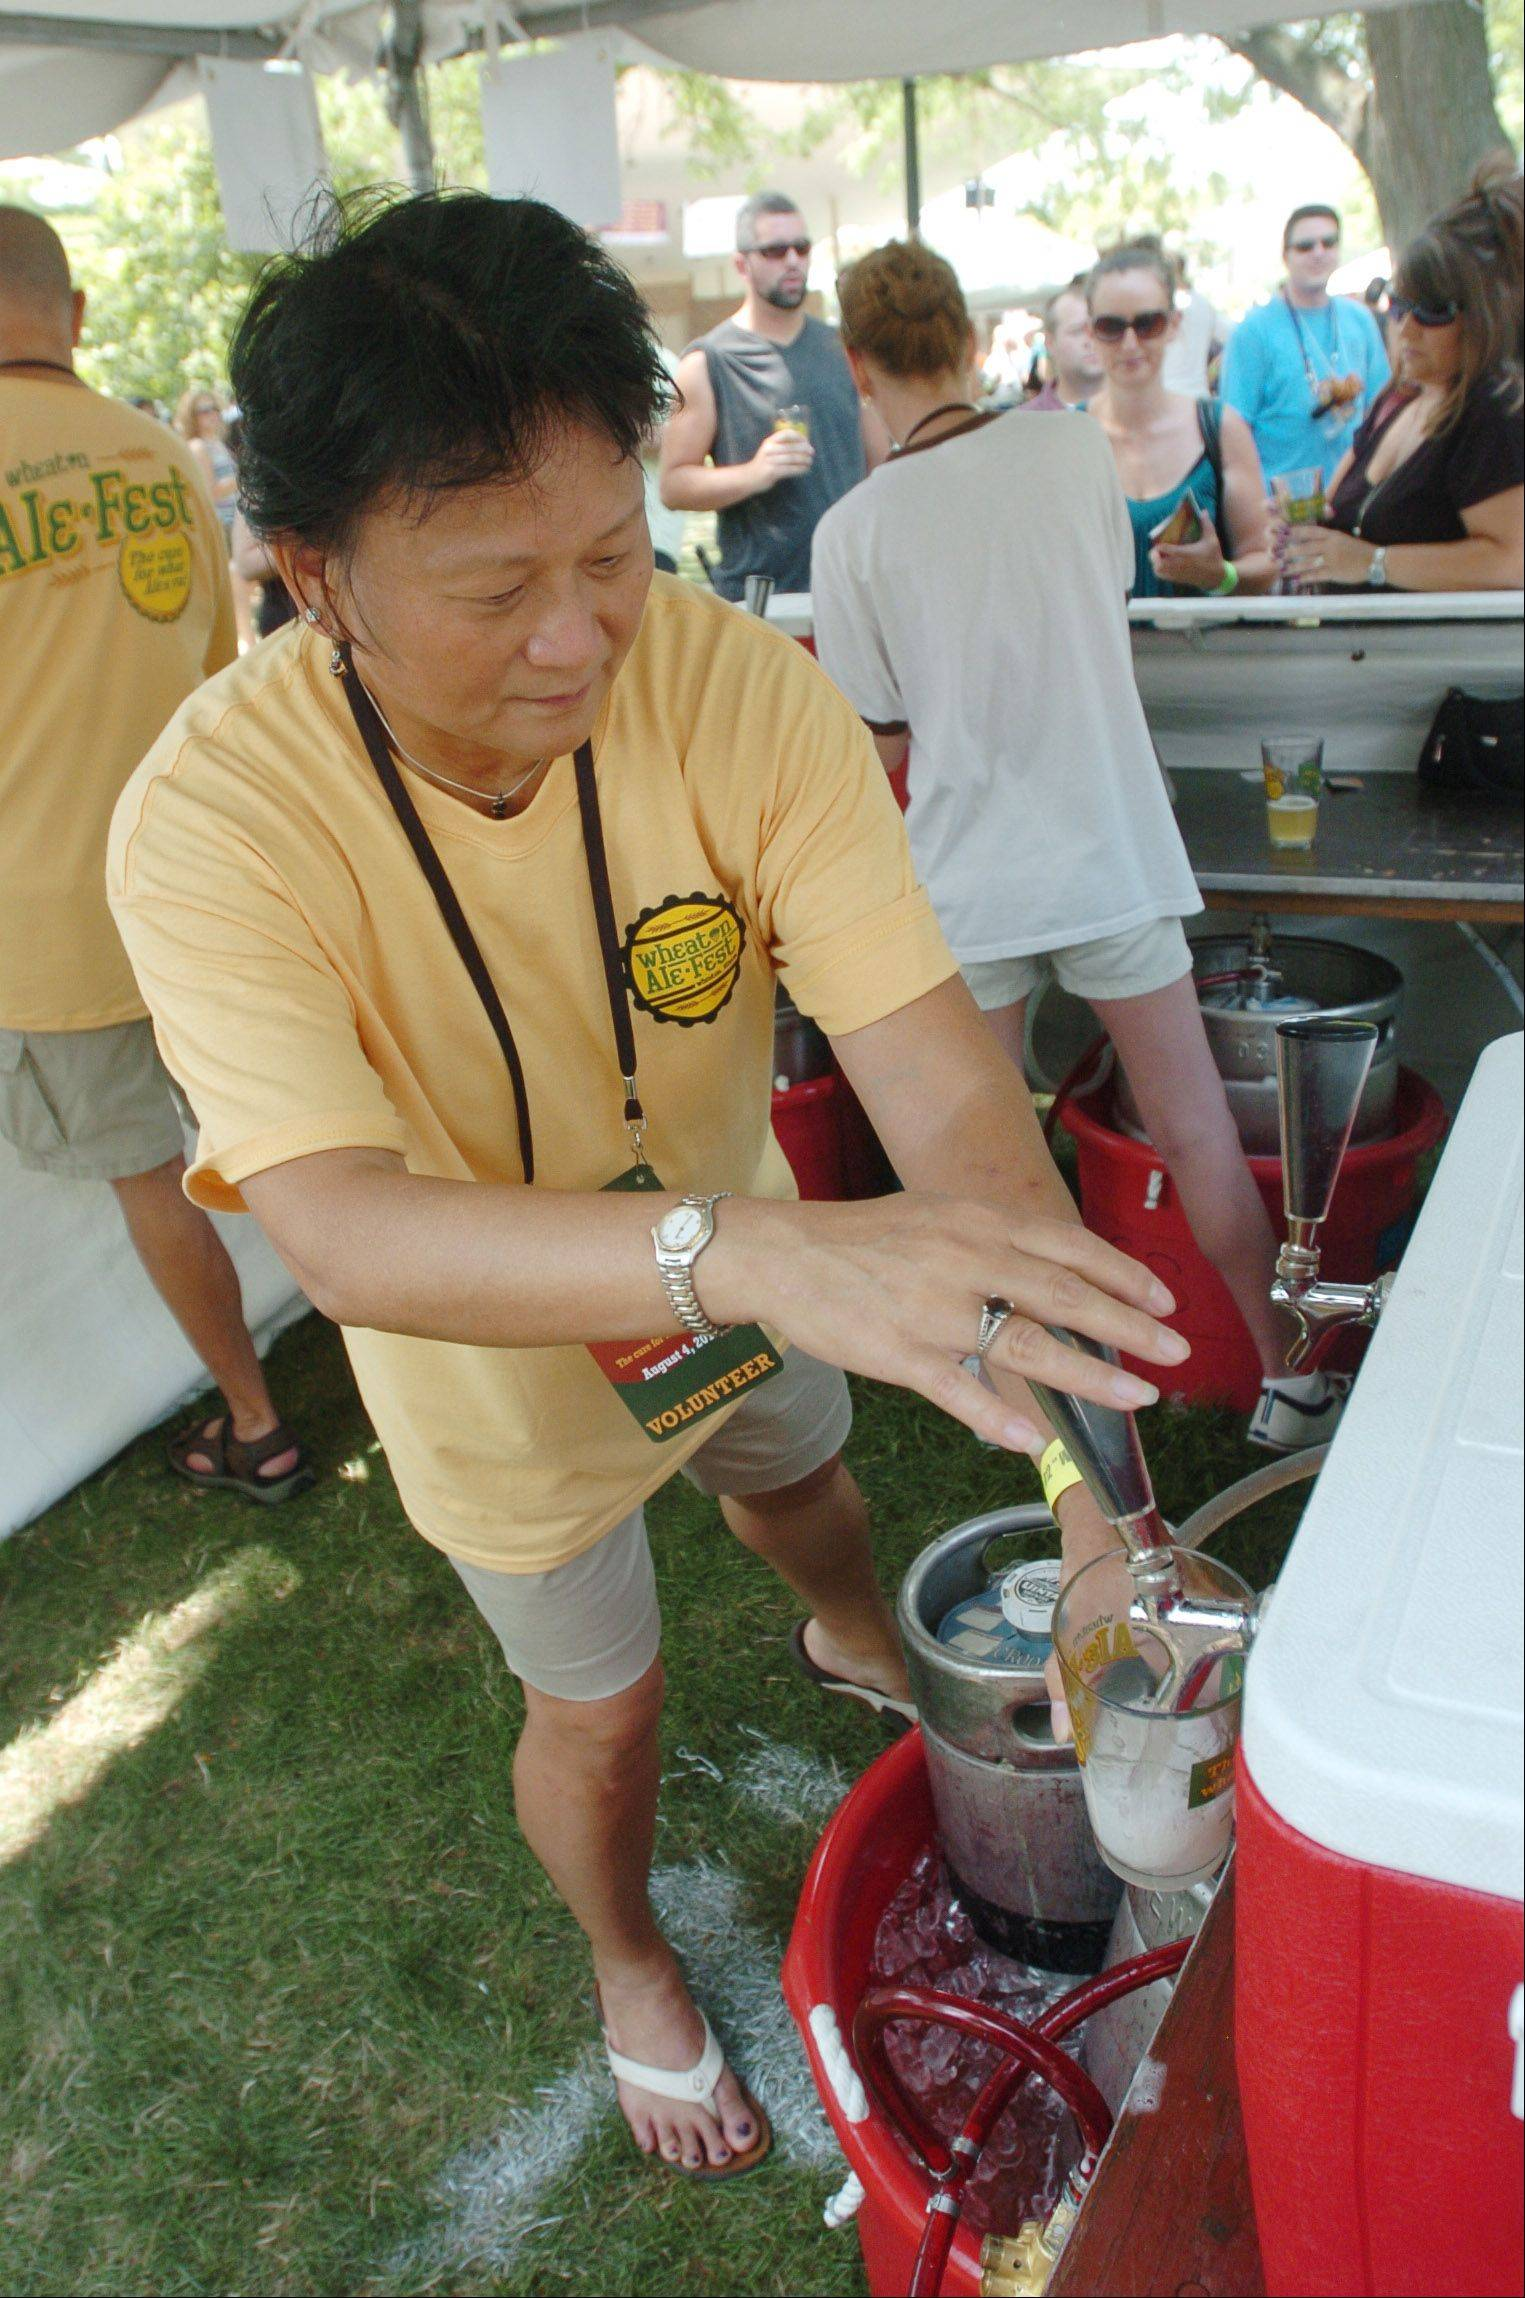 June Yoshimura of Glen Ellyn taps a keg during Wheaton Ale Fest Saturday at Memorial Park. Hundreds of brew enthusiasts sampled beers from 53 local and out-of-state breweries at the second annual event.